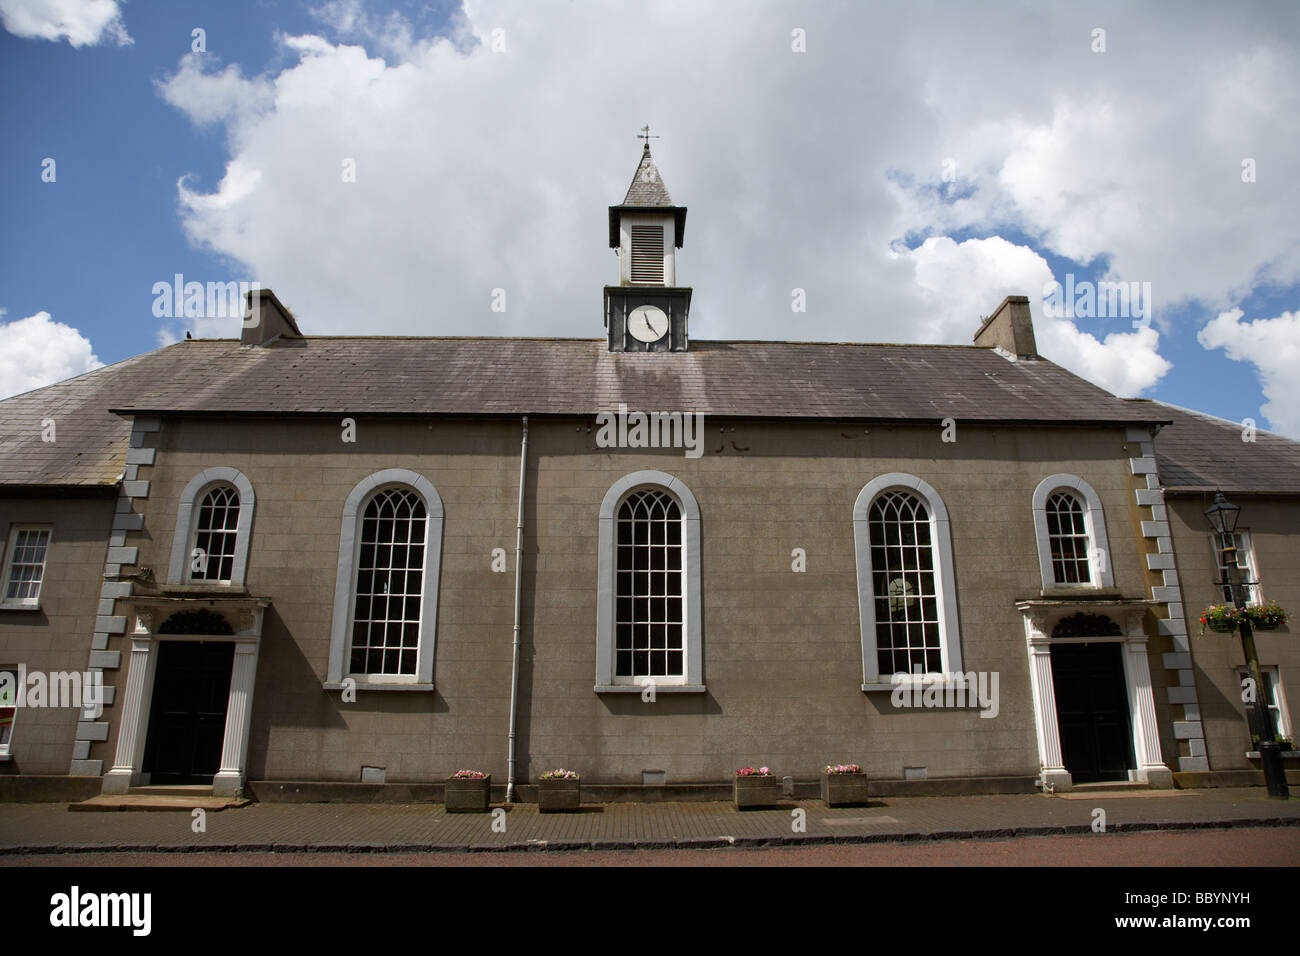 moravian church in 18th century gracehill village a moravian settlement in county antrim northern ireland uk - Stock Image